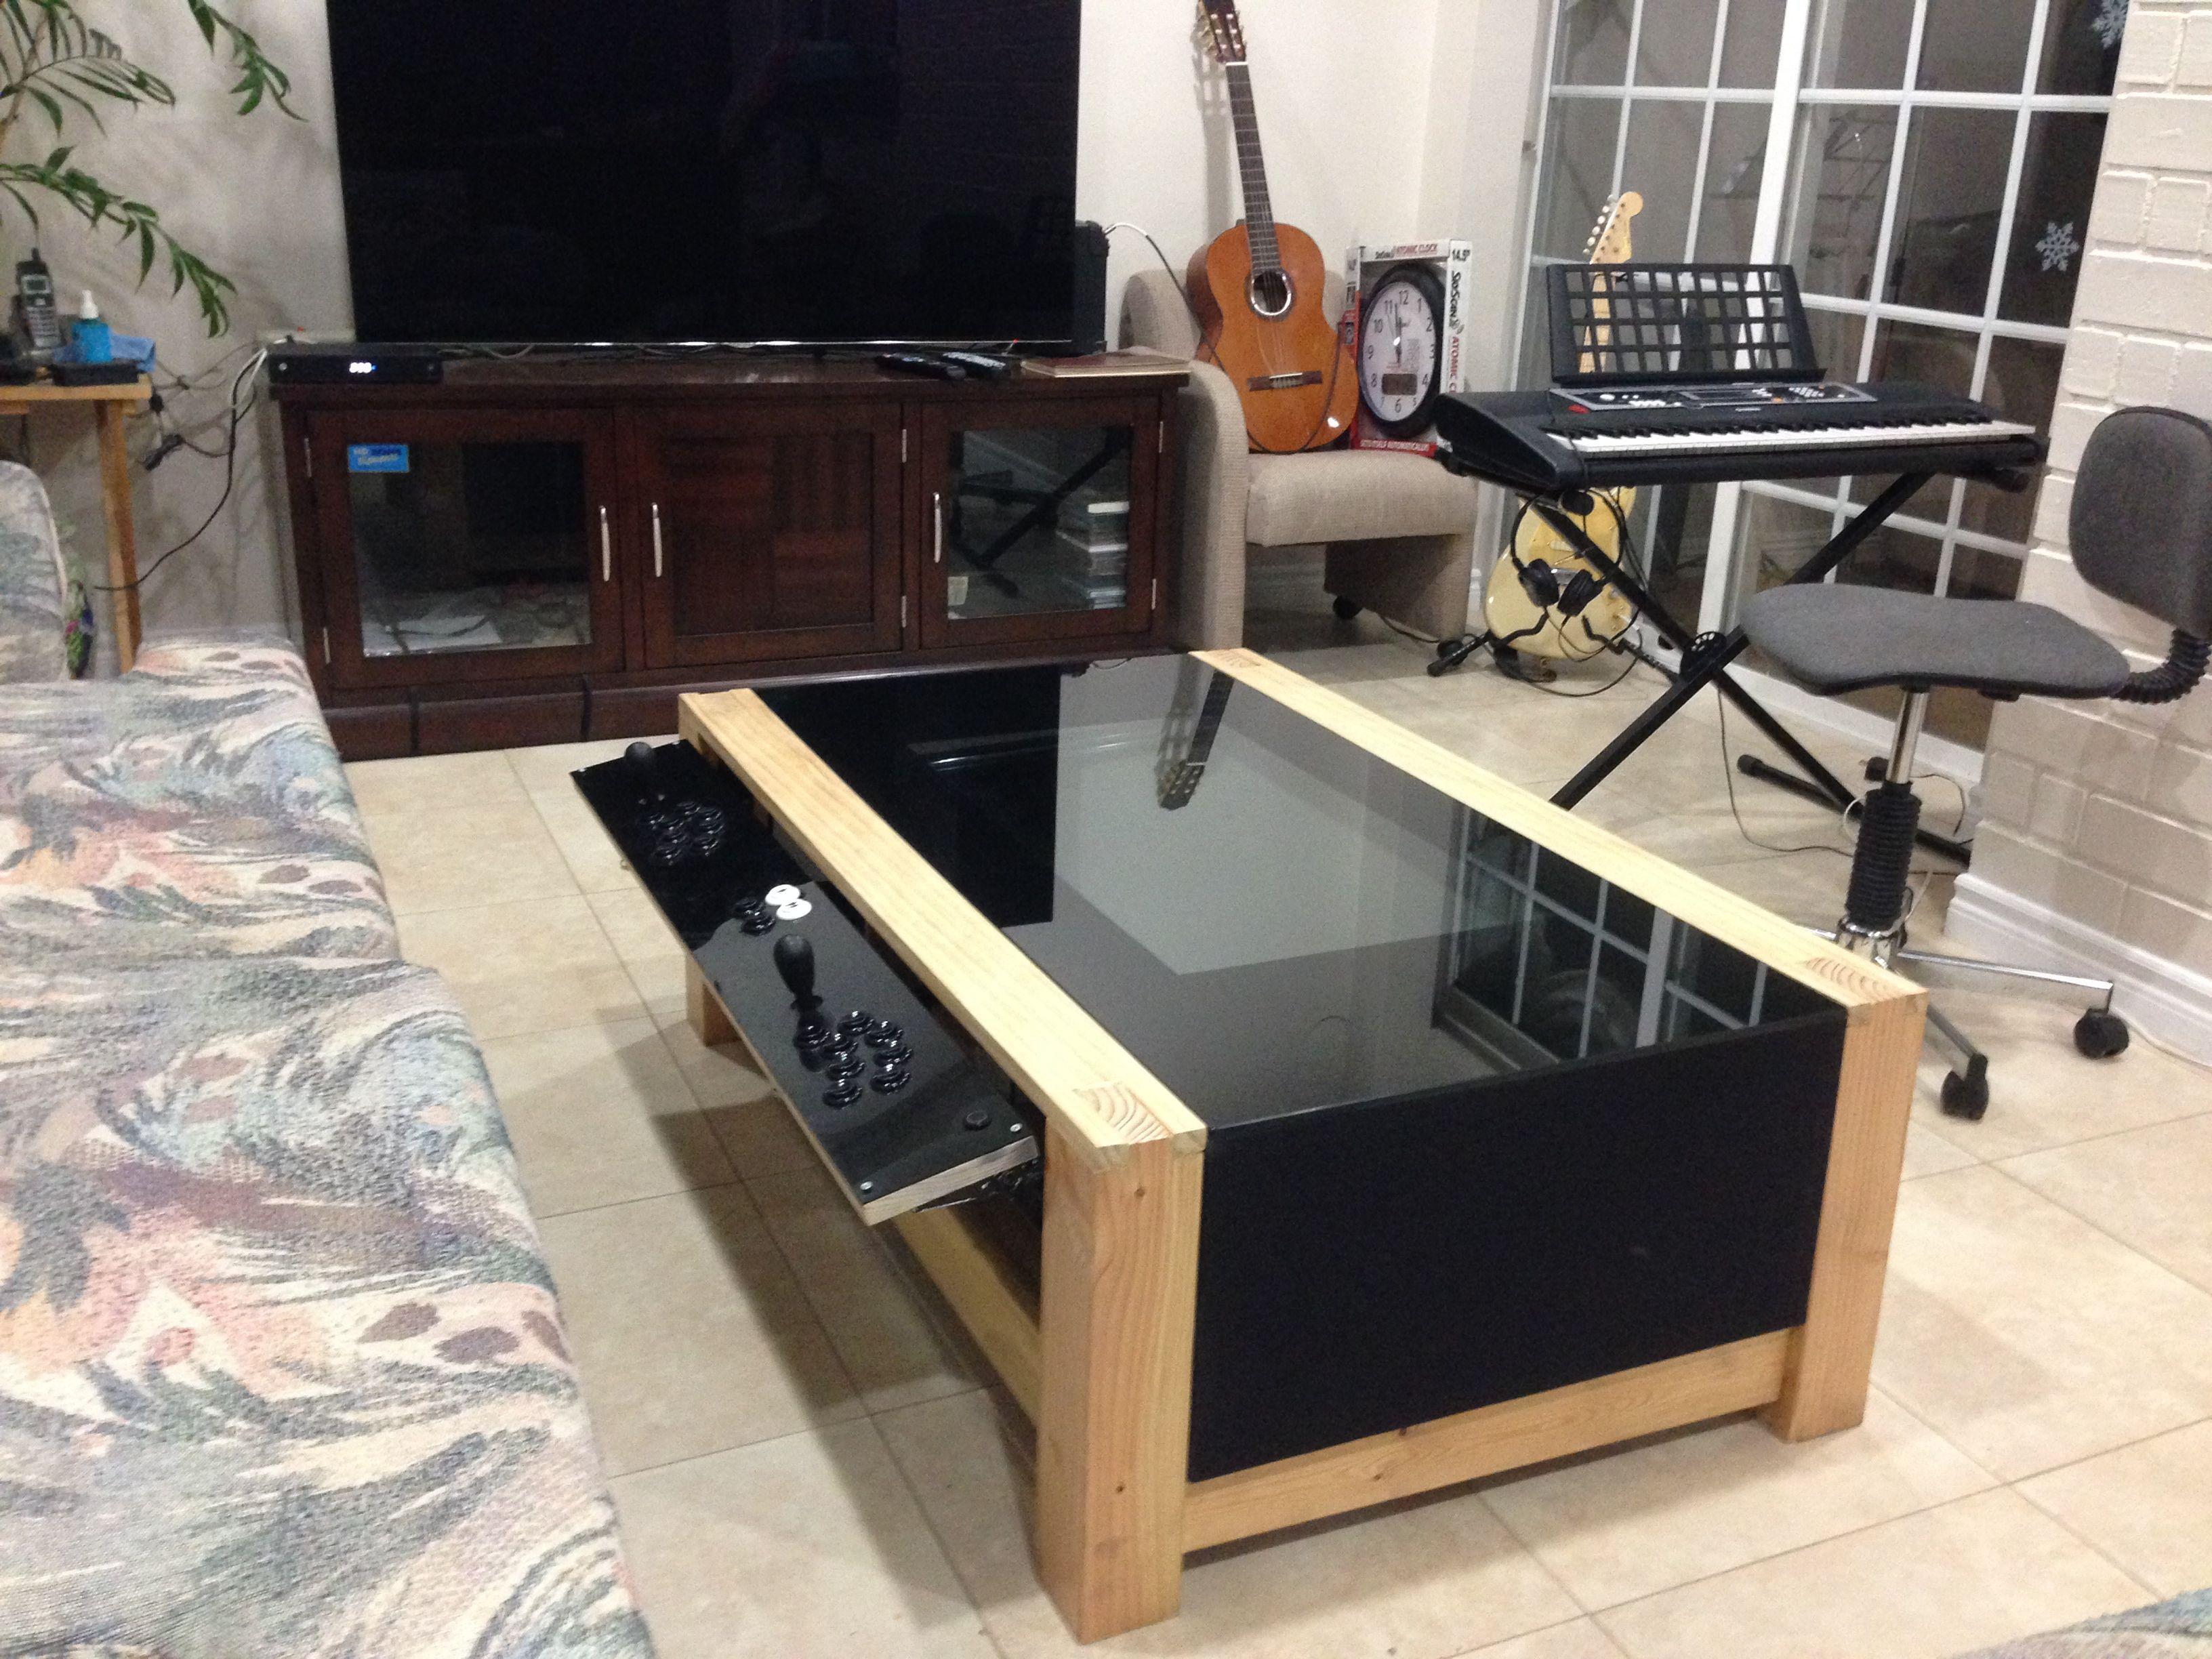 Diy Arcade Coffee Table Arcade Gaming And Arcade Games